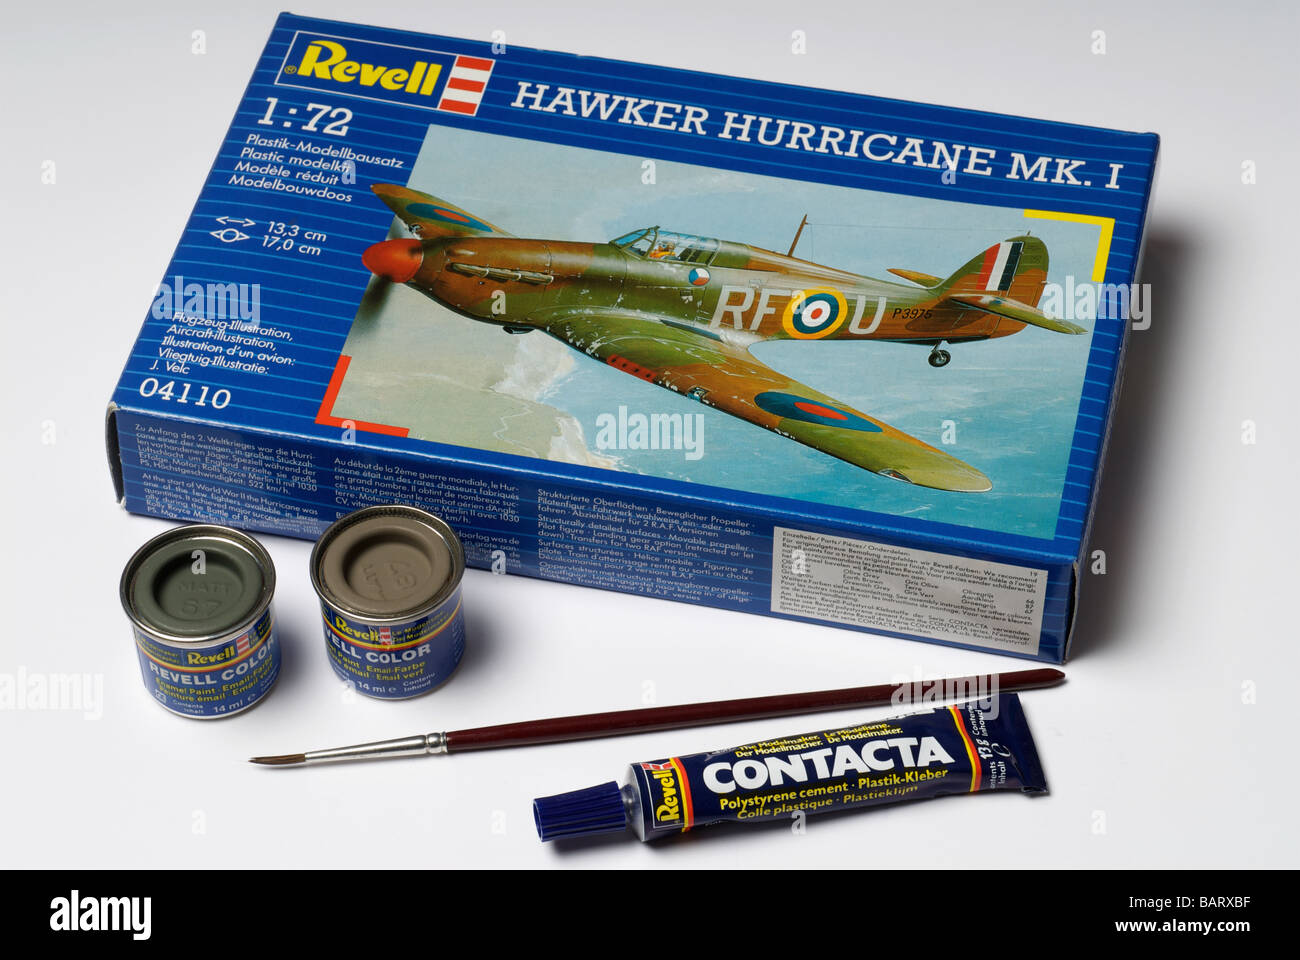 Revell 1:72 scale Hawker Hurricane plastic model kit - Stock Image